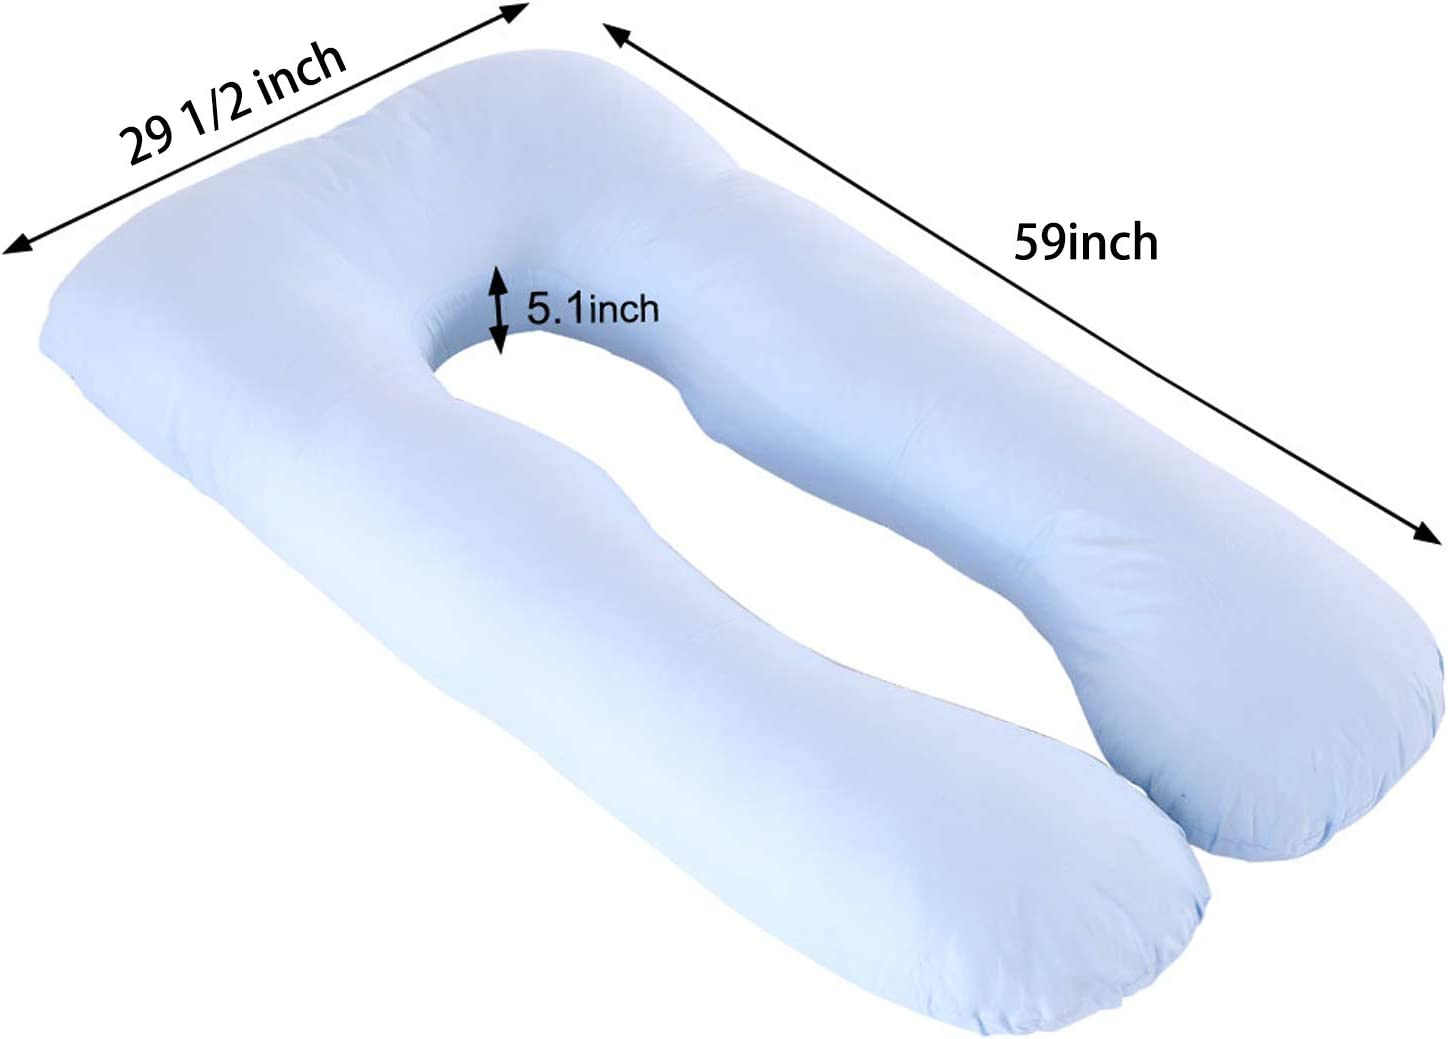 Sunfayzz Pregnancy Pillow,Maternity Body Pillow,U-Shaped Multi for Side Sleeping and Back Support with Removable Washable Cotton Cover Moon Blue 59 Inch Bed Pillow